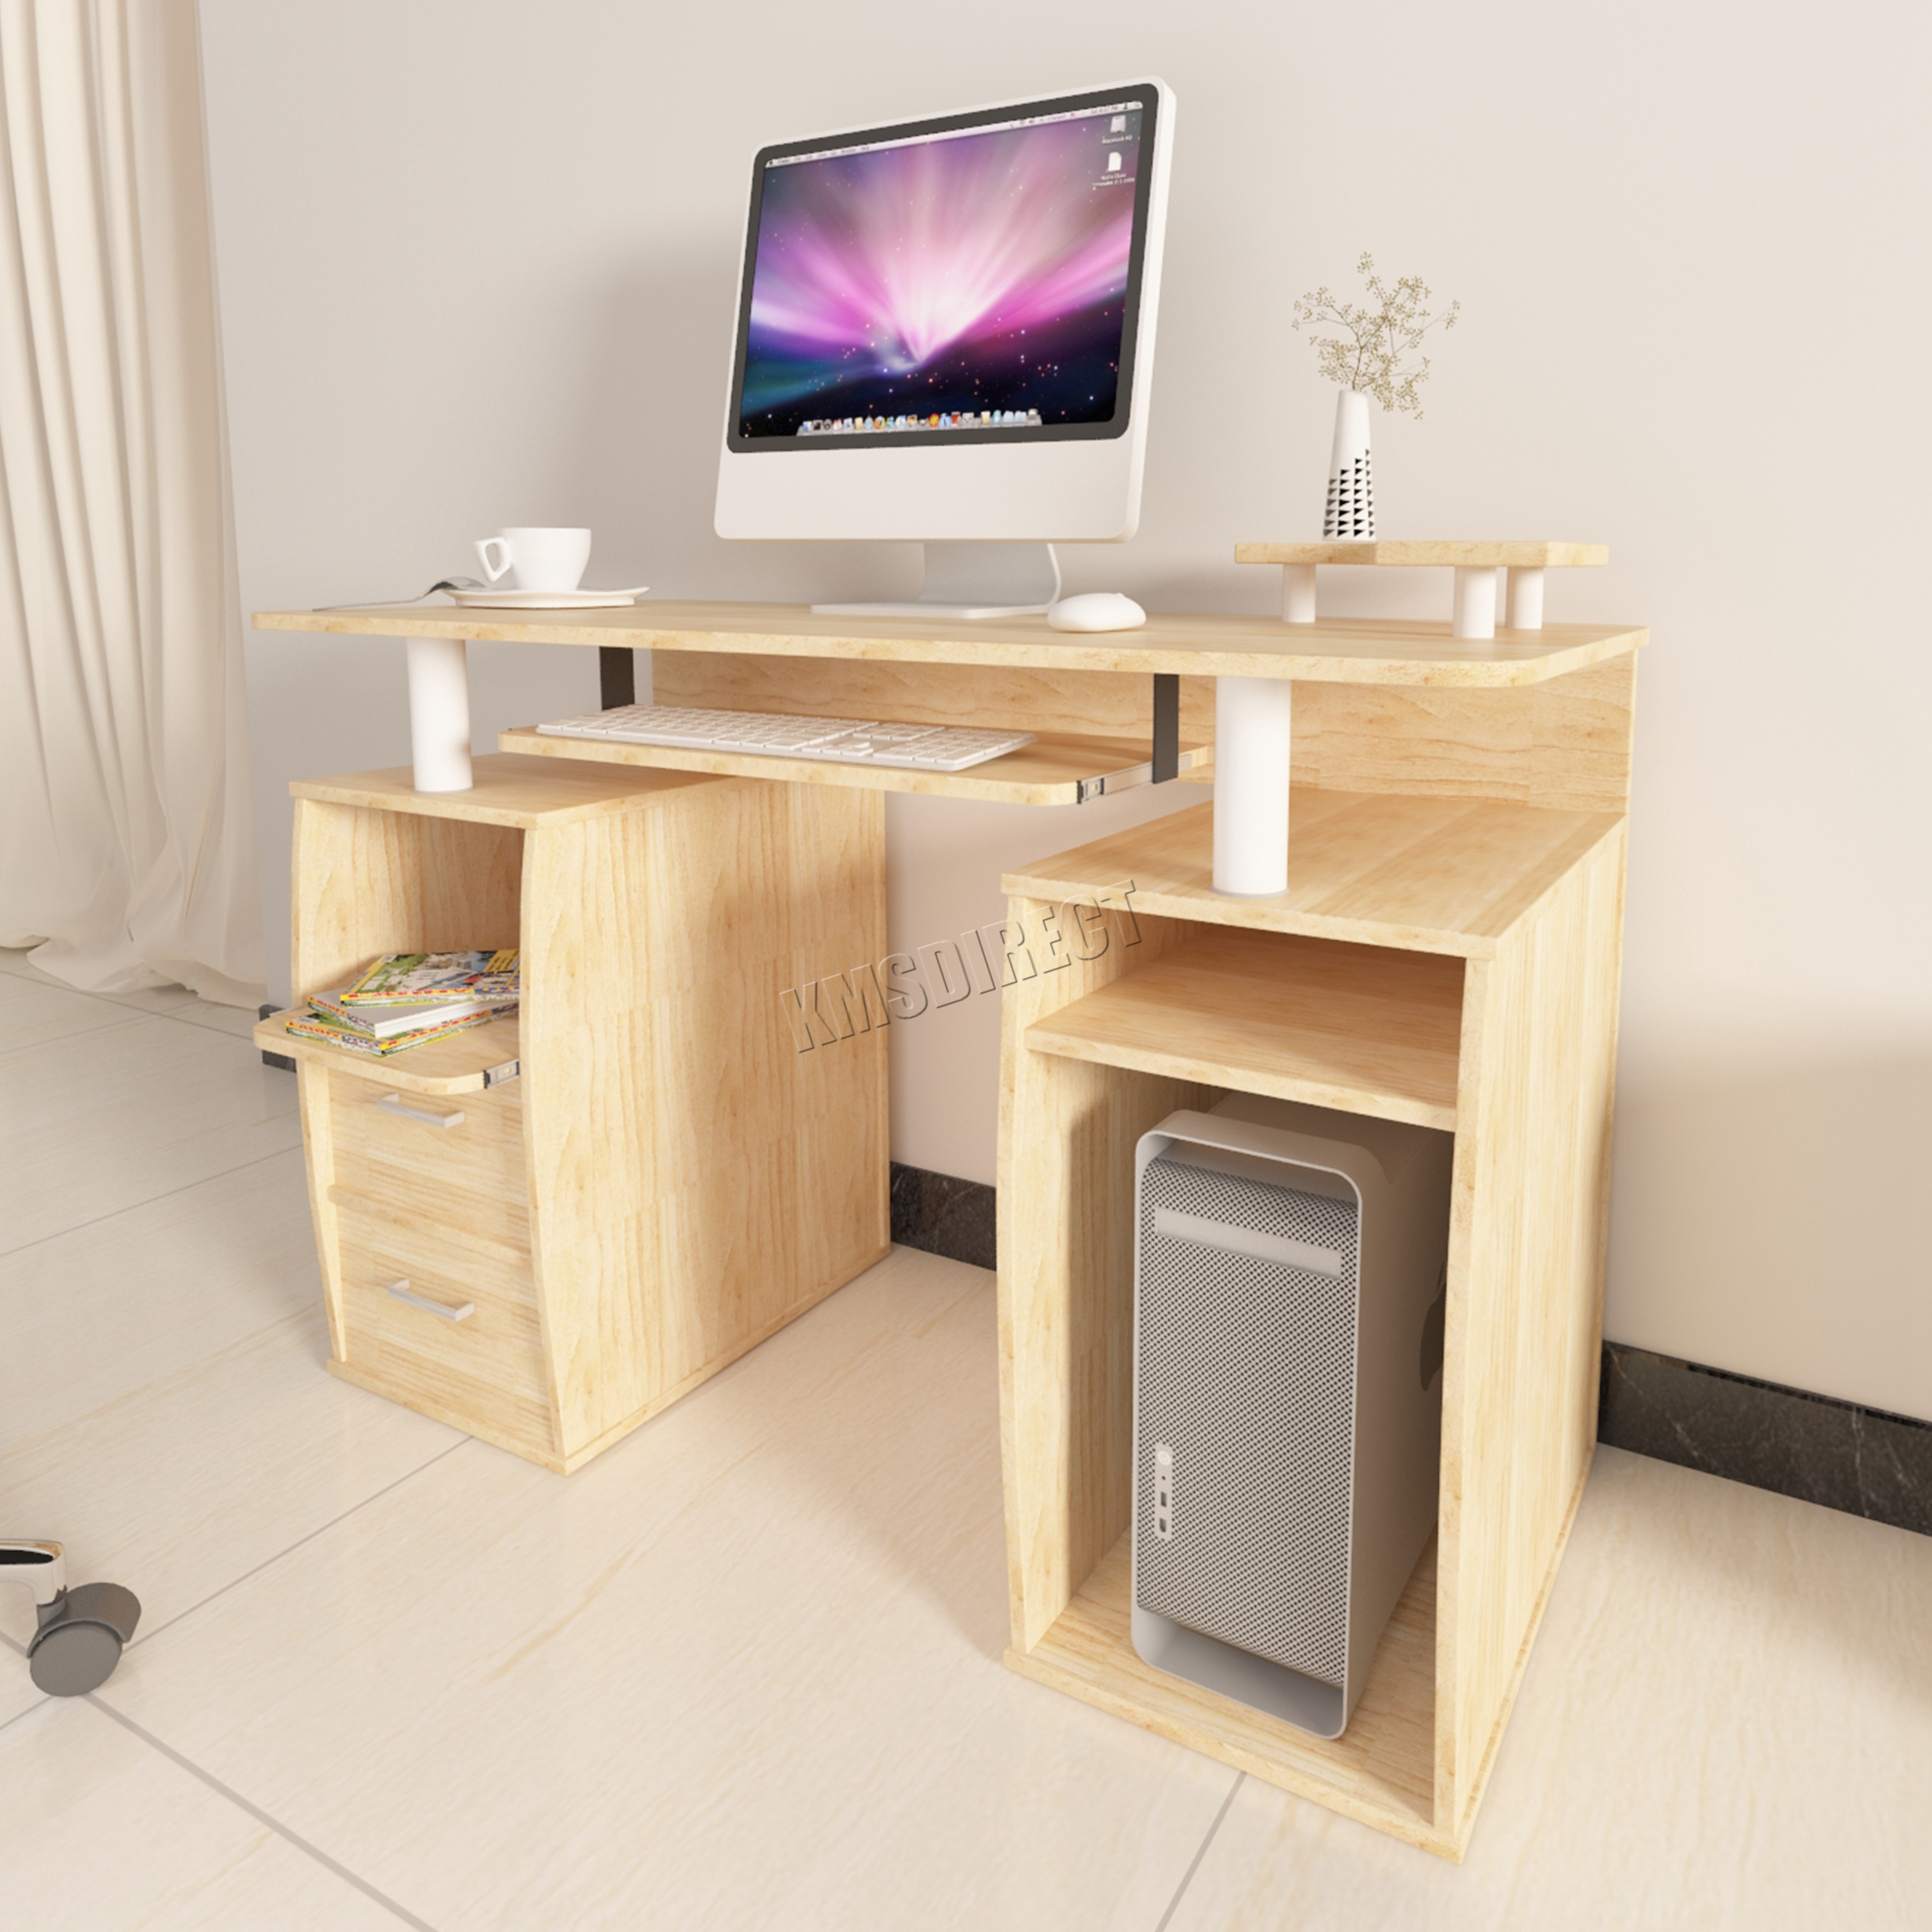 FoxHunter Computer Desk PC Table With Shelves Drawers